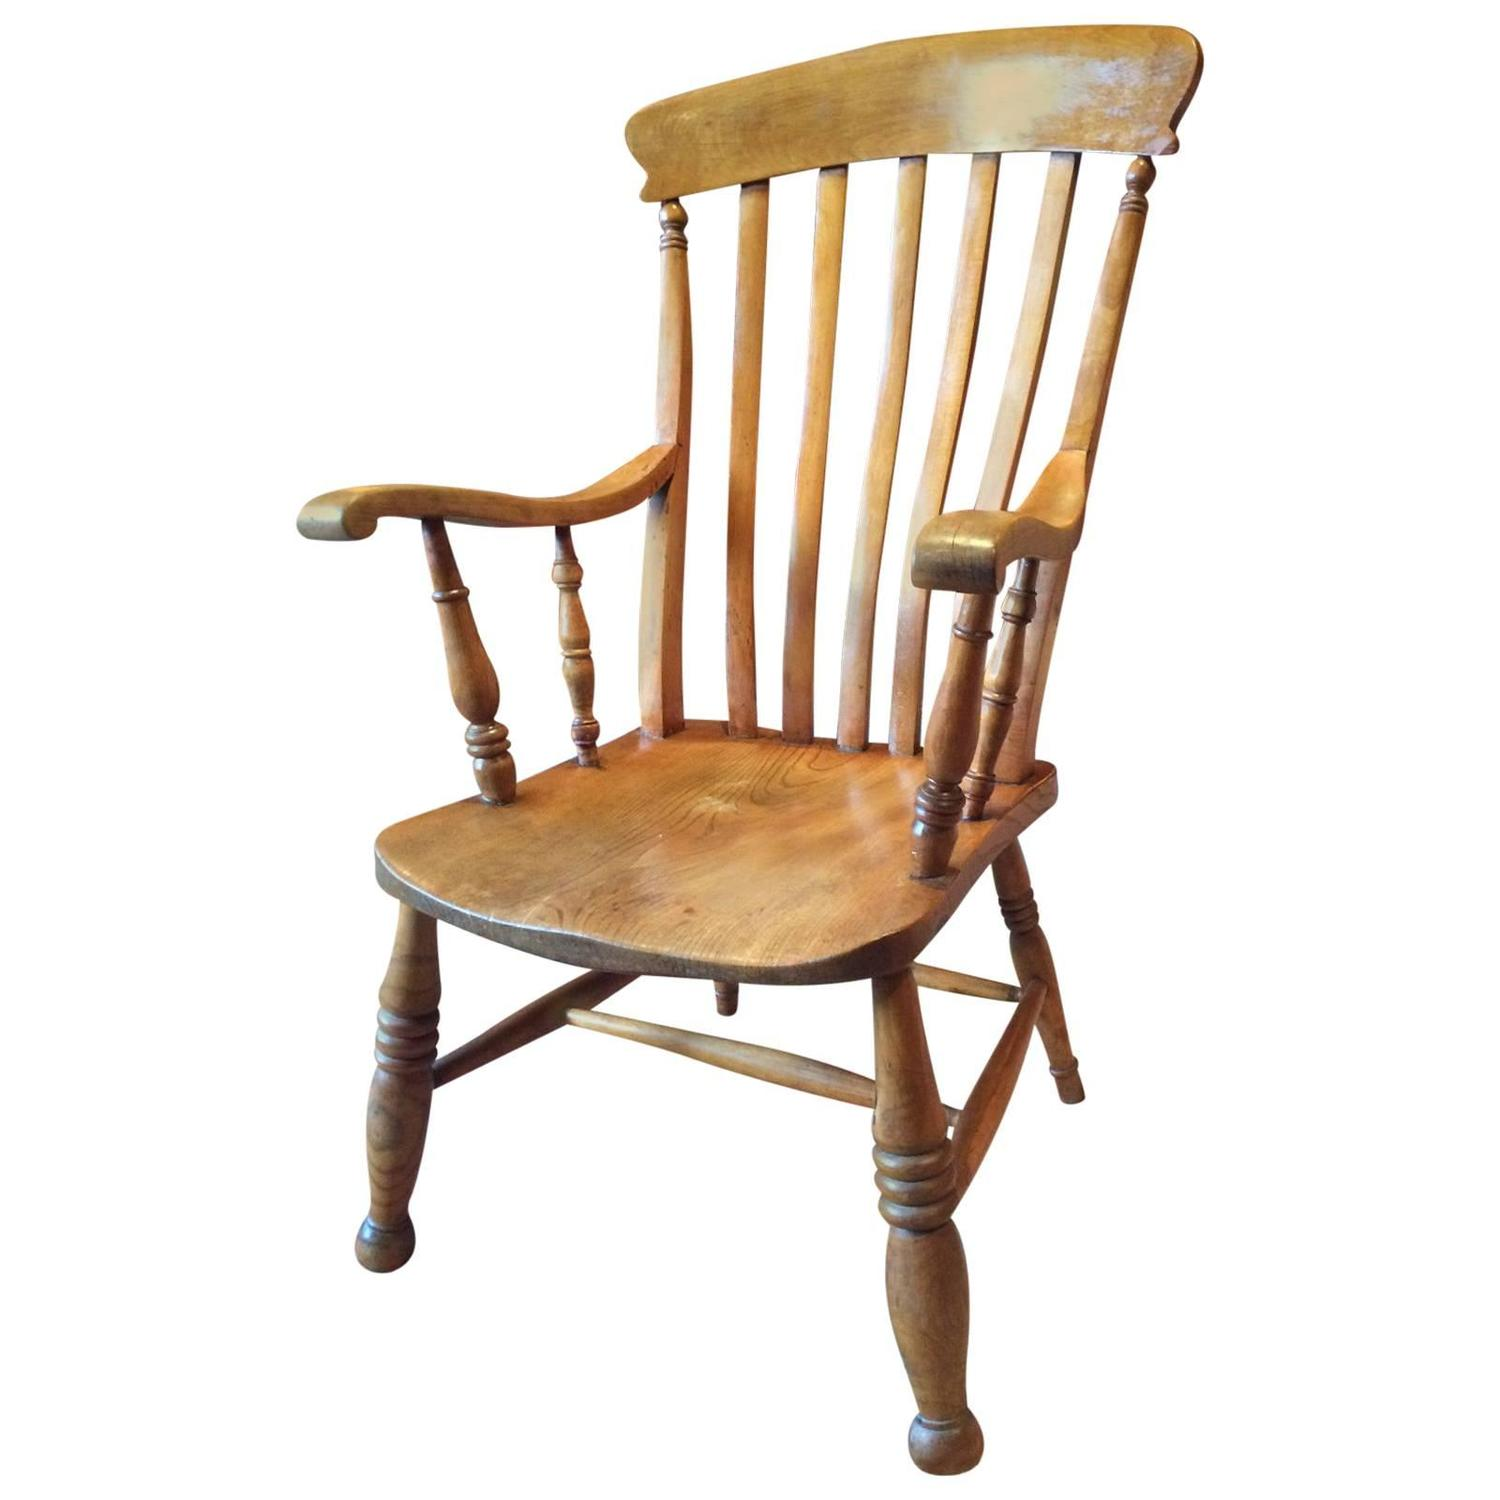 antique windsor chairs travel high chair booster seats stunning armchair 19th century